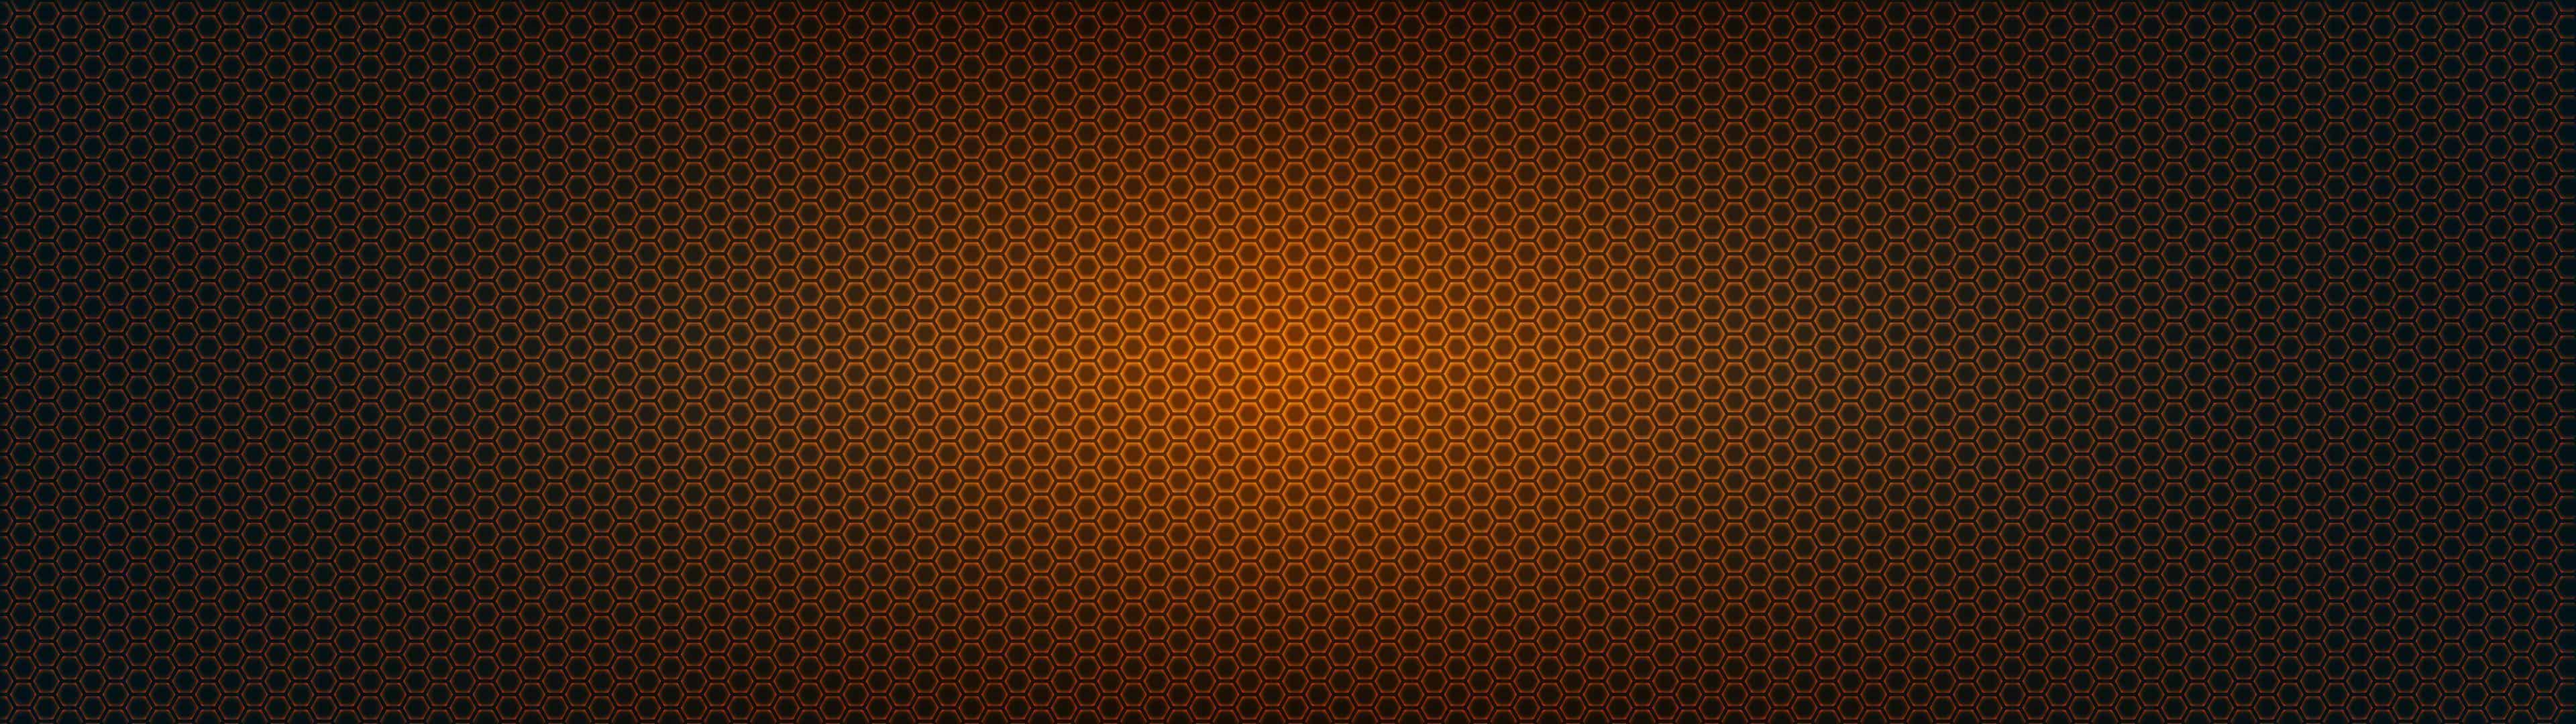 Hexagon Pattern Orange And Black Dual Monitor Wallpaper Pixelz 3840x1080